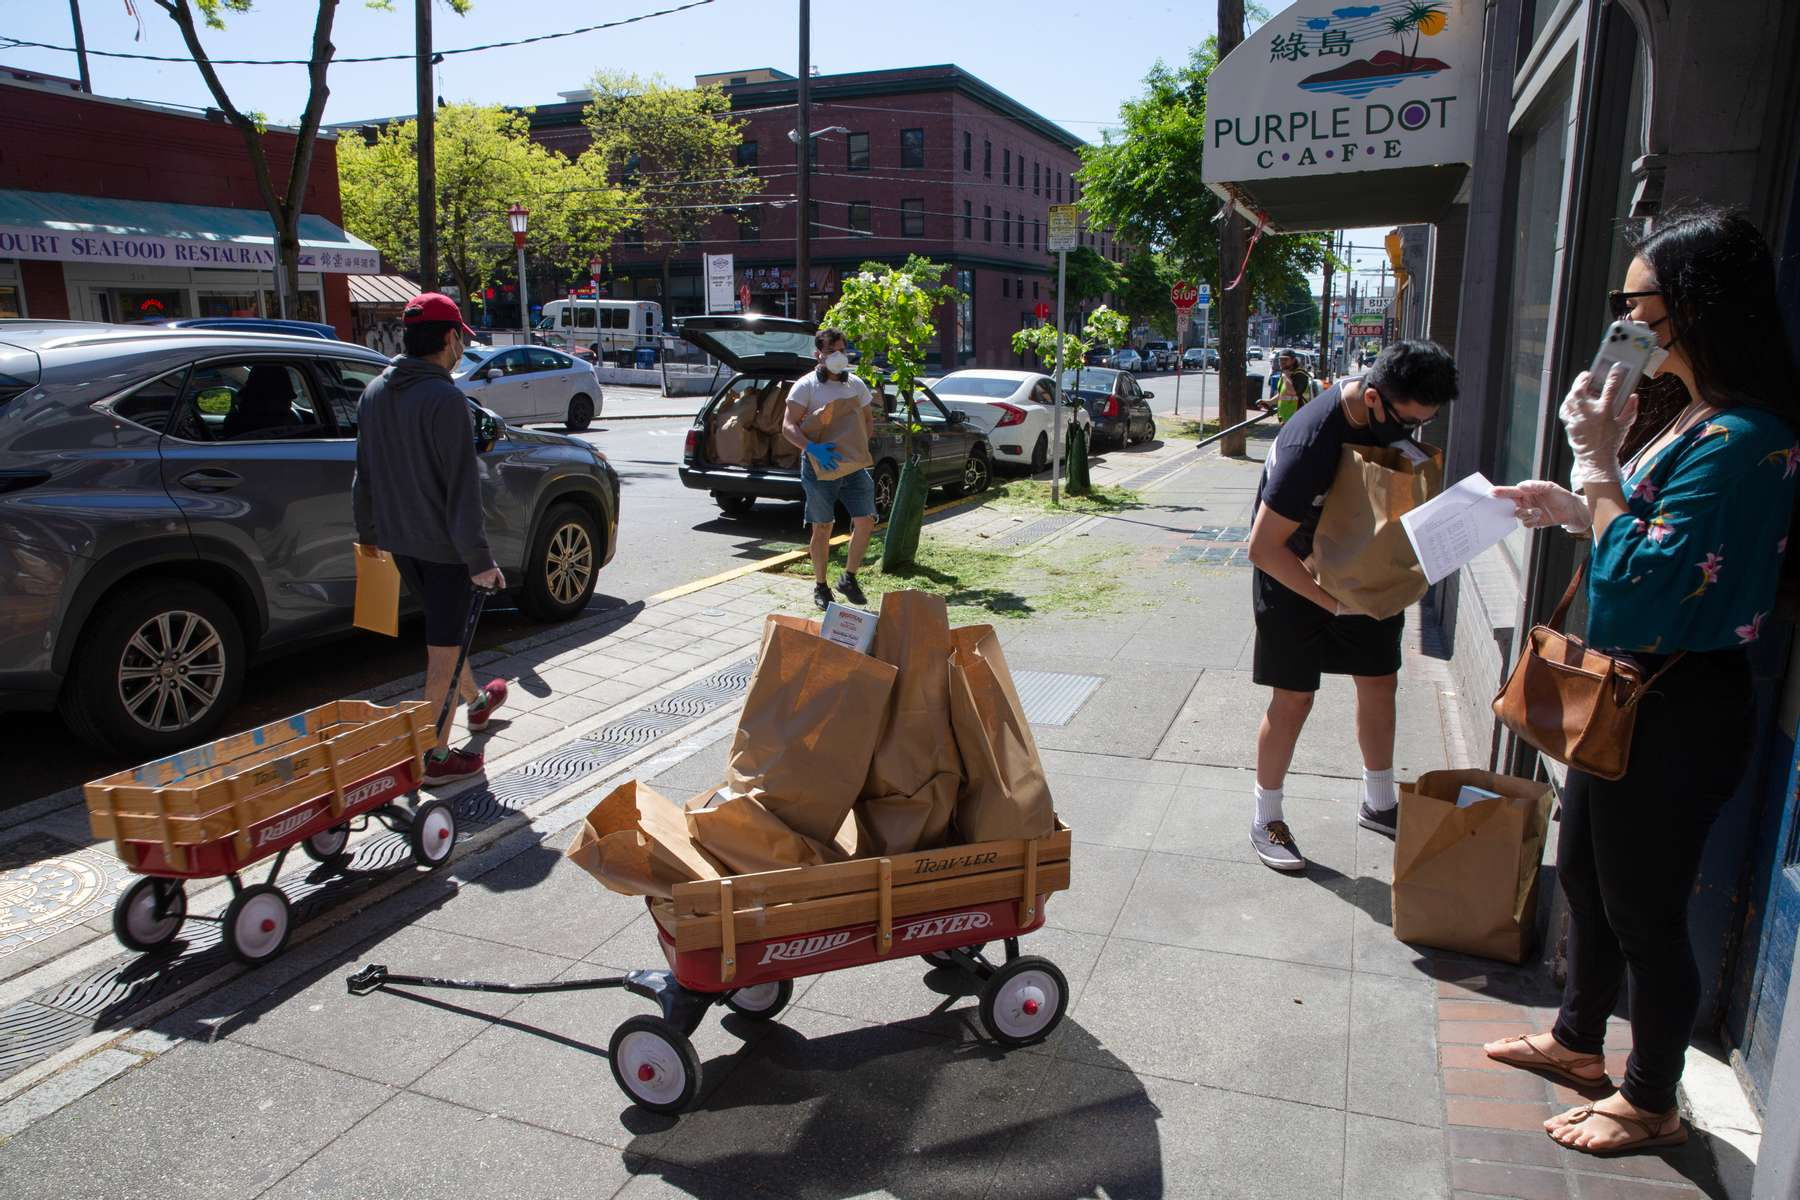 Volunteers and staff distribute food and groceries throughout the Chinatown-International District on May 7, 2020. Vincent Kwan, a program manager at InterIm says{quote}It's called disaster gentrification. An already vulnerable neighborhood having the impacts of COVID is already accelerating the gentrification that's already happening. So, we're very concerned about that.This community is meant for people that have been marginalized, have been pushed away from white neighborhoods historically. And they found refuge here. How do we protect a historical landmark and also a historical place for folks that call it home?{quote}(photo by Karen Ducey)